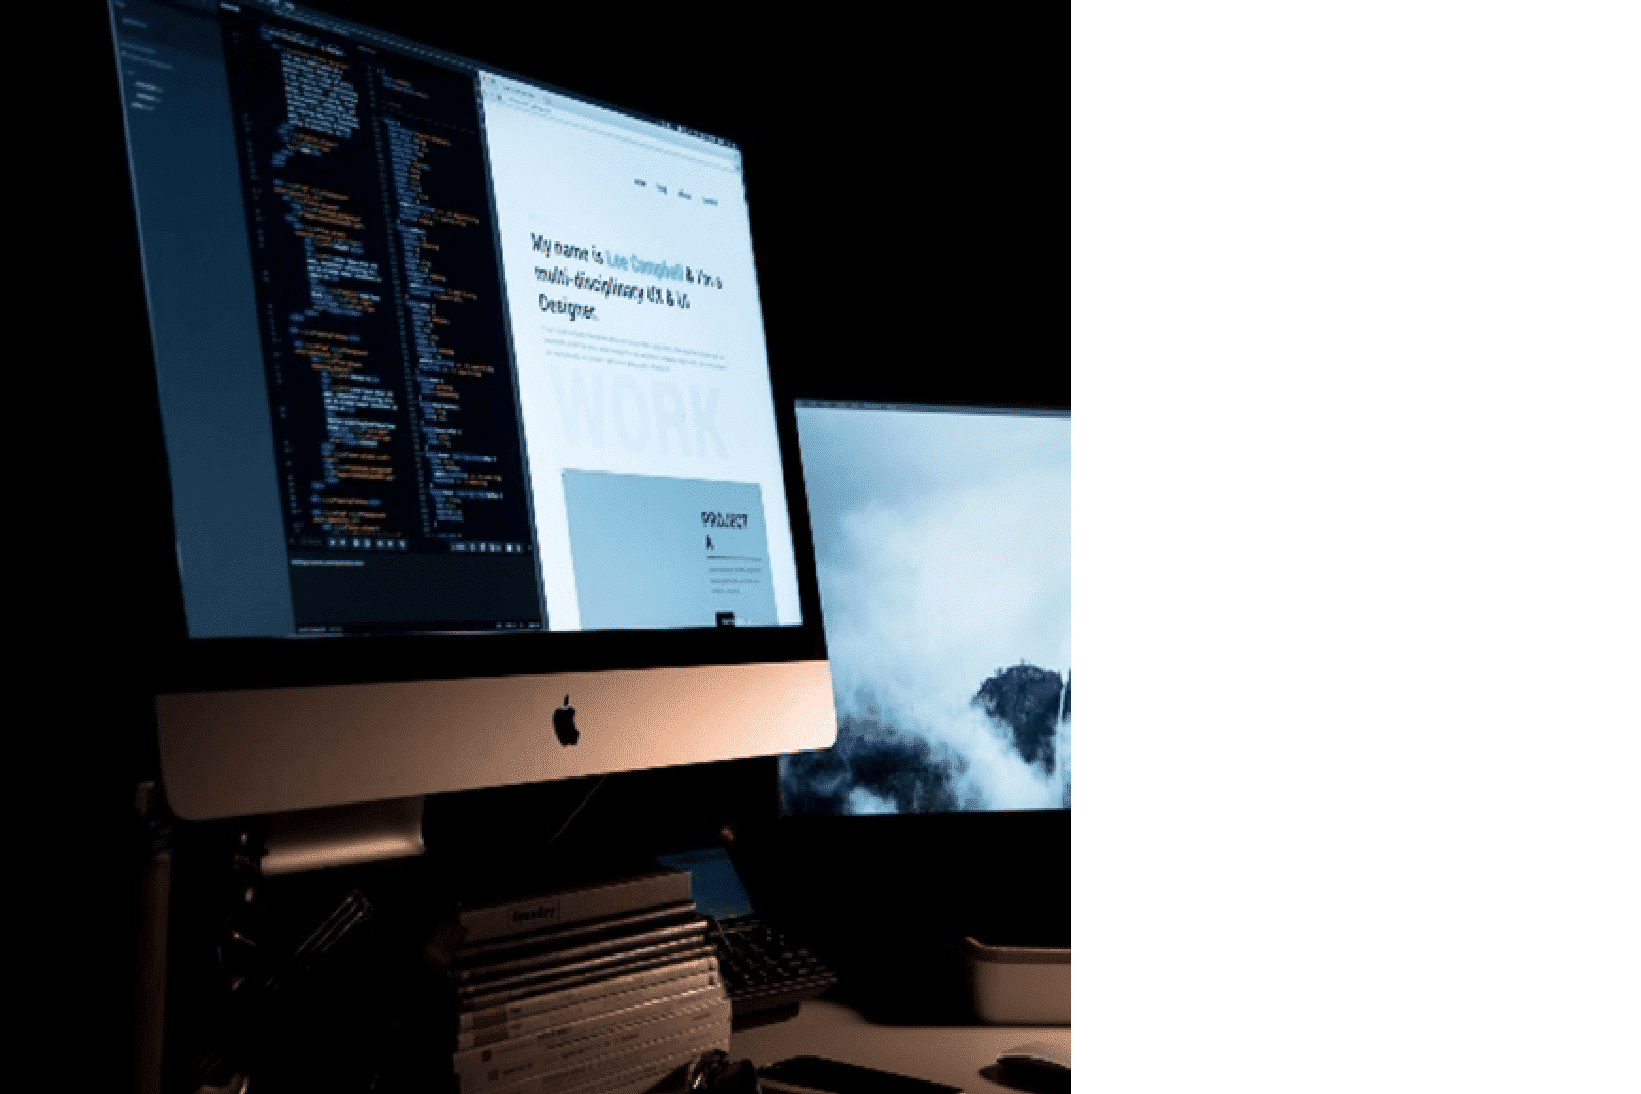 Web Programming and Webmaster College Degrees